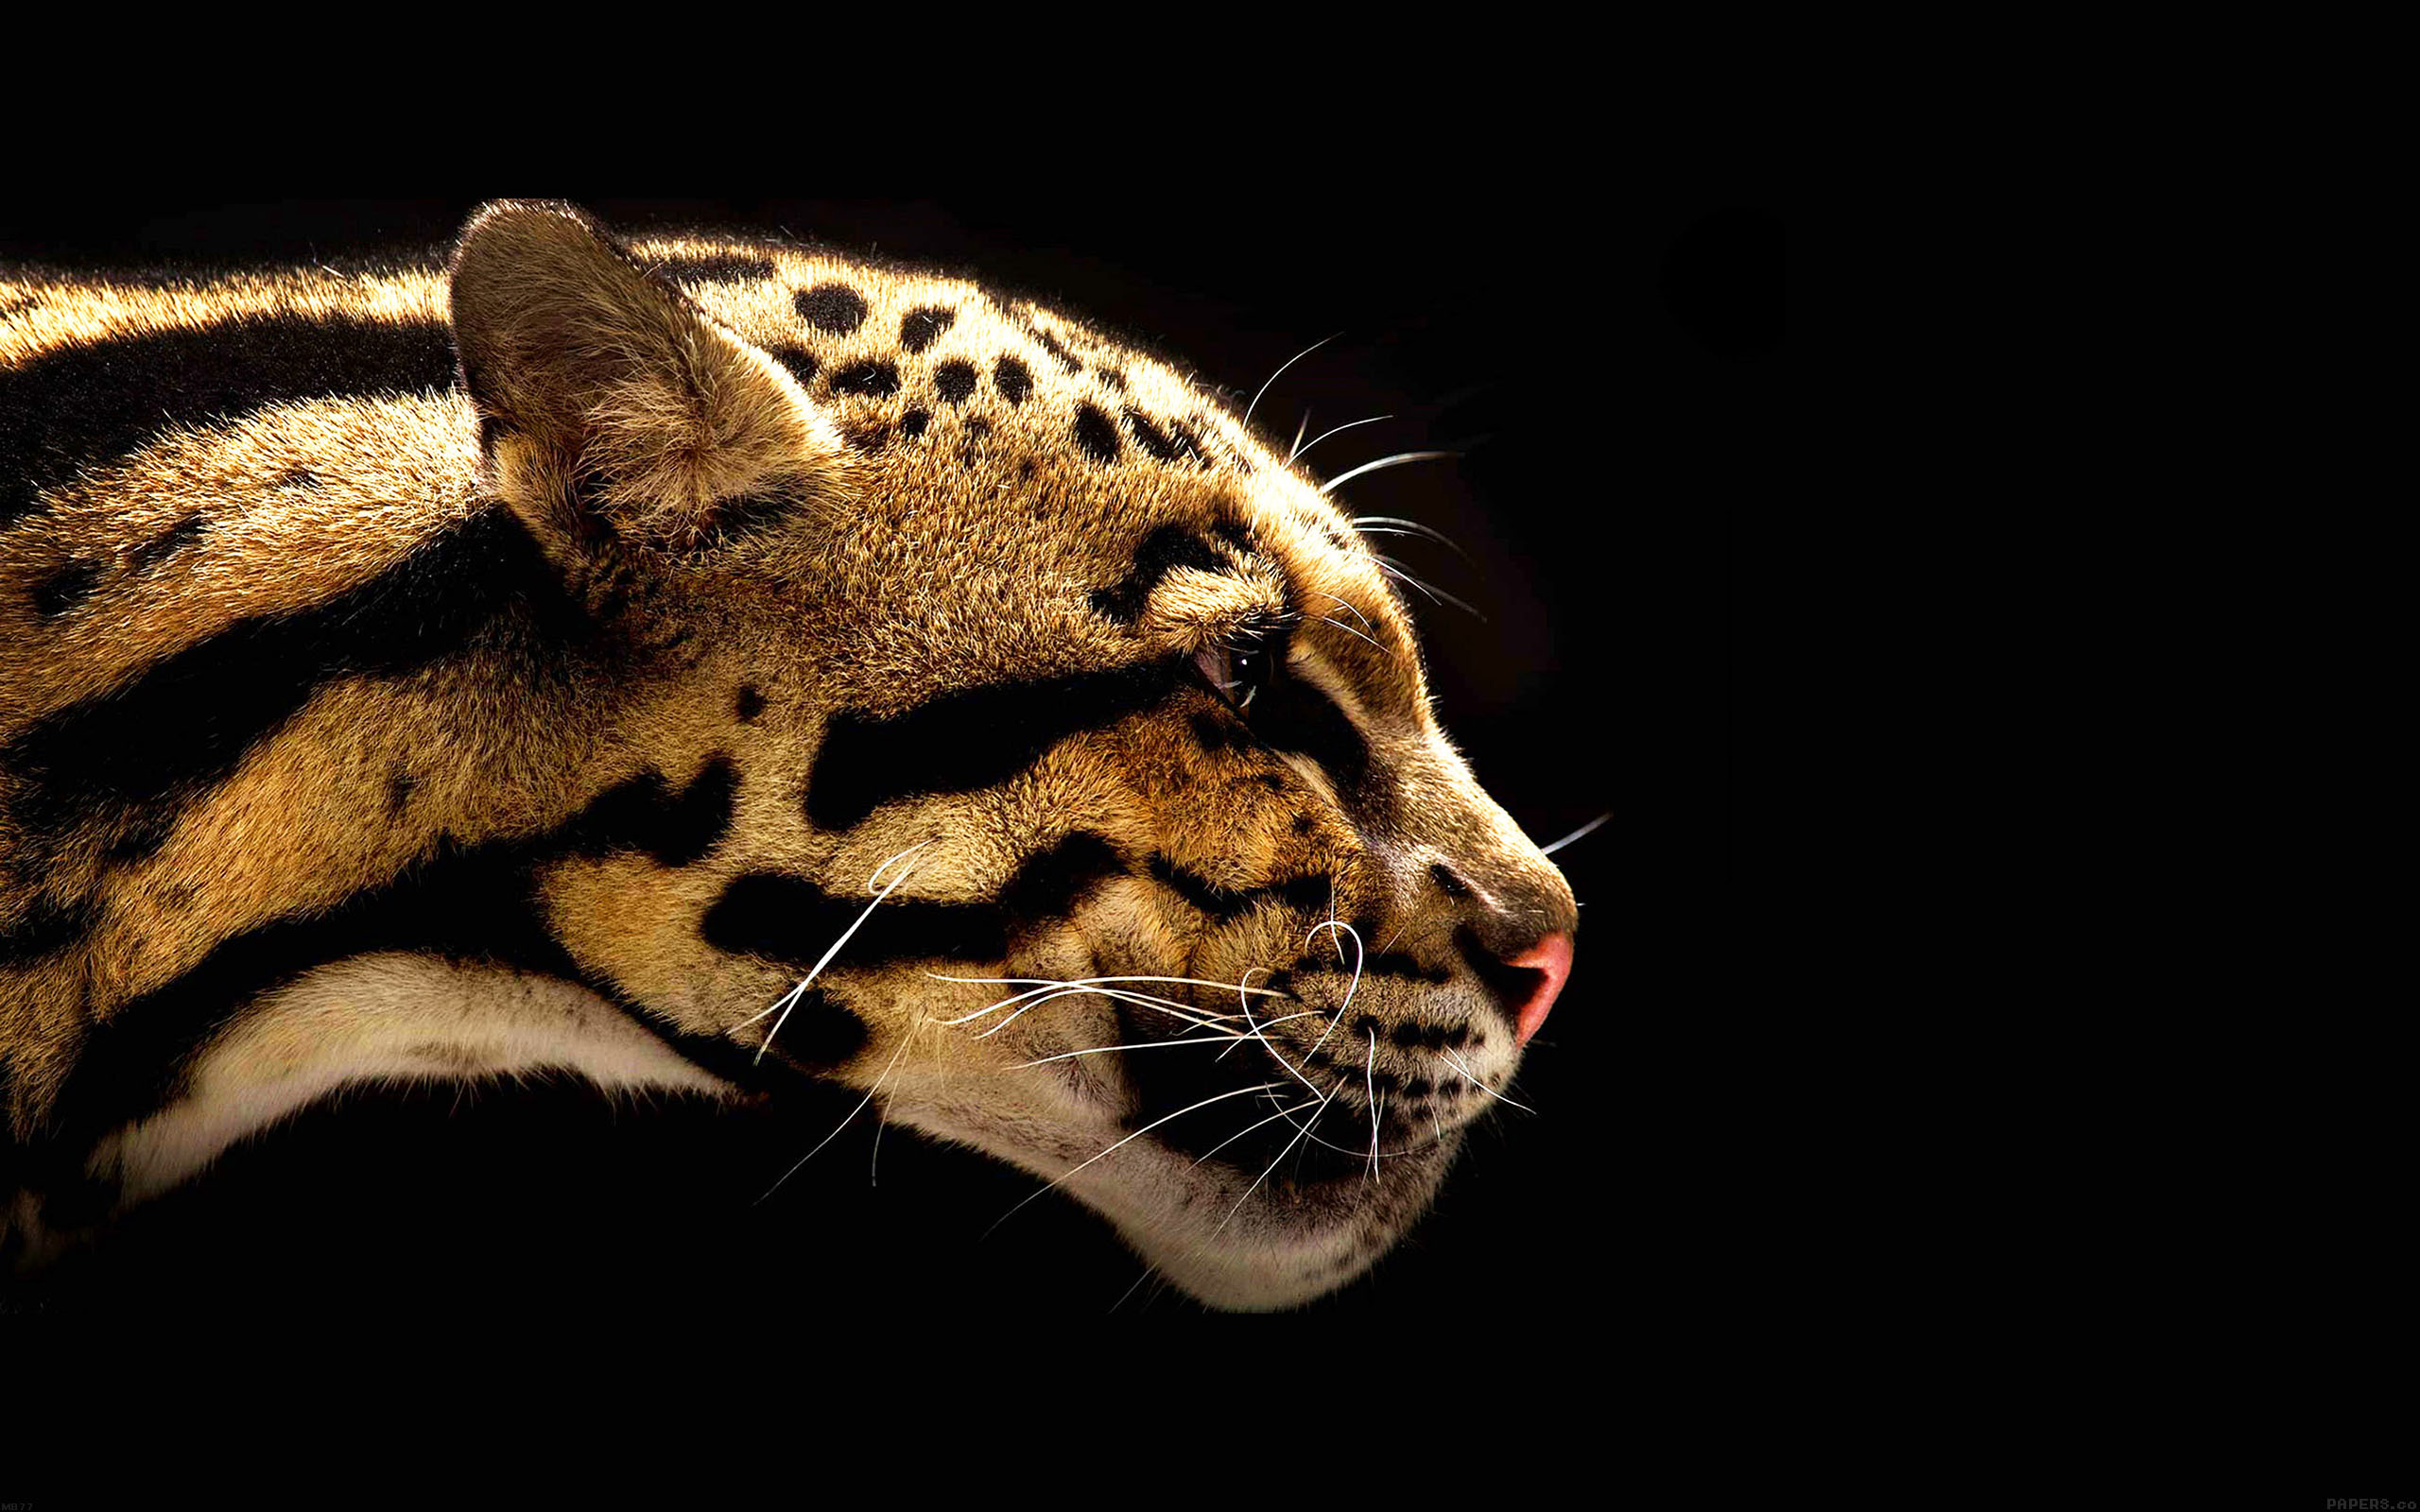 Wallpaper Hp Iphone X Mb77 Wallpaper Wild Cat B Animal Papers Co